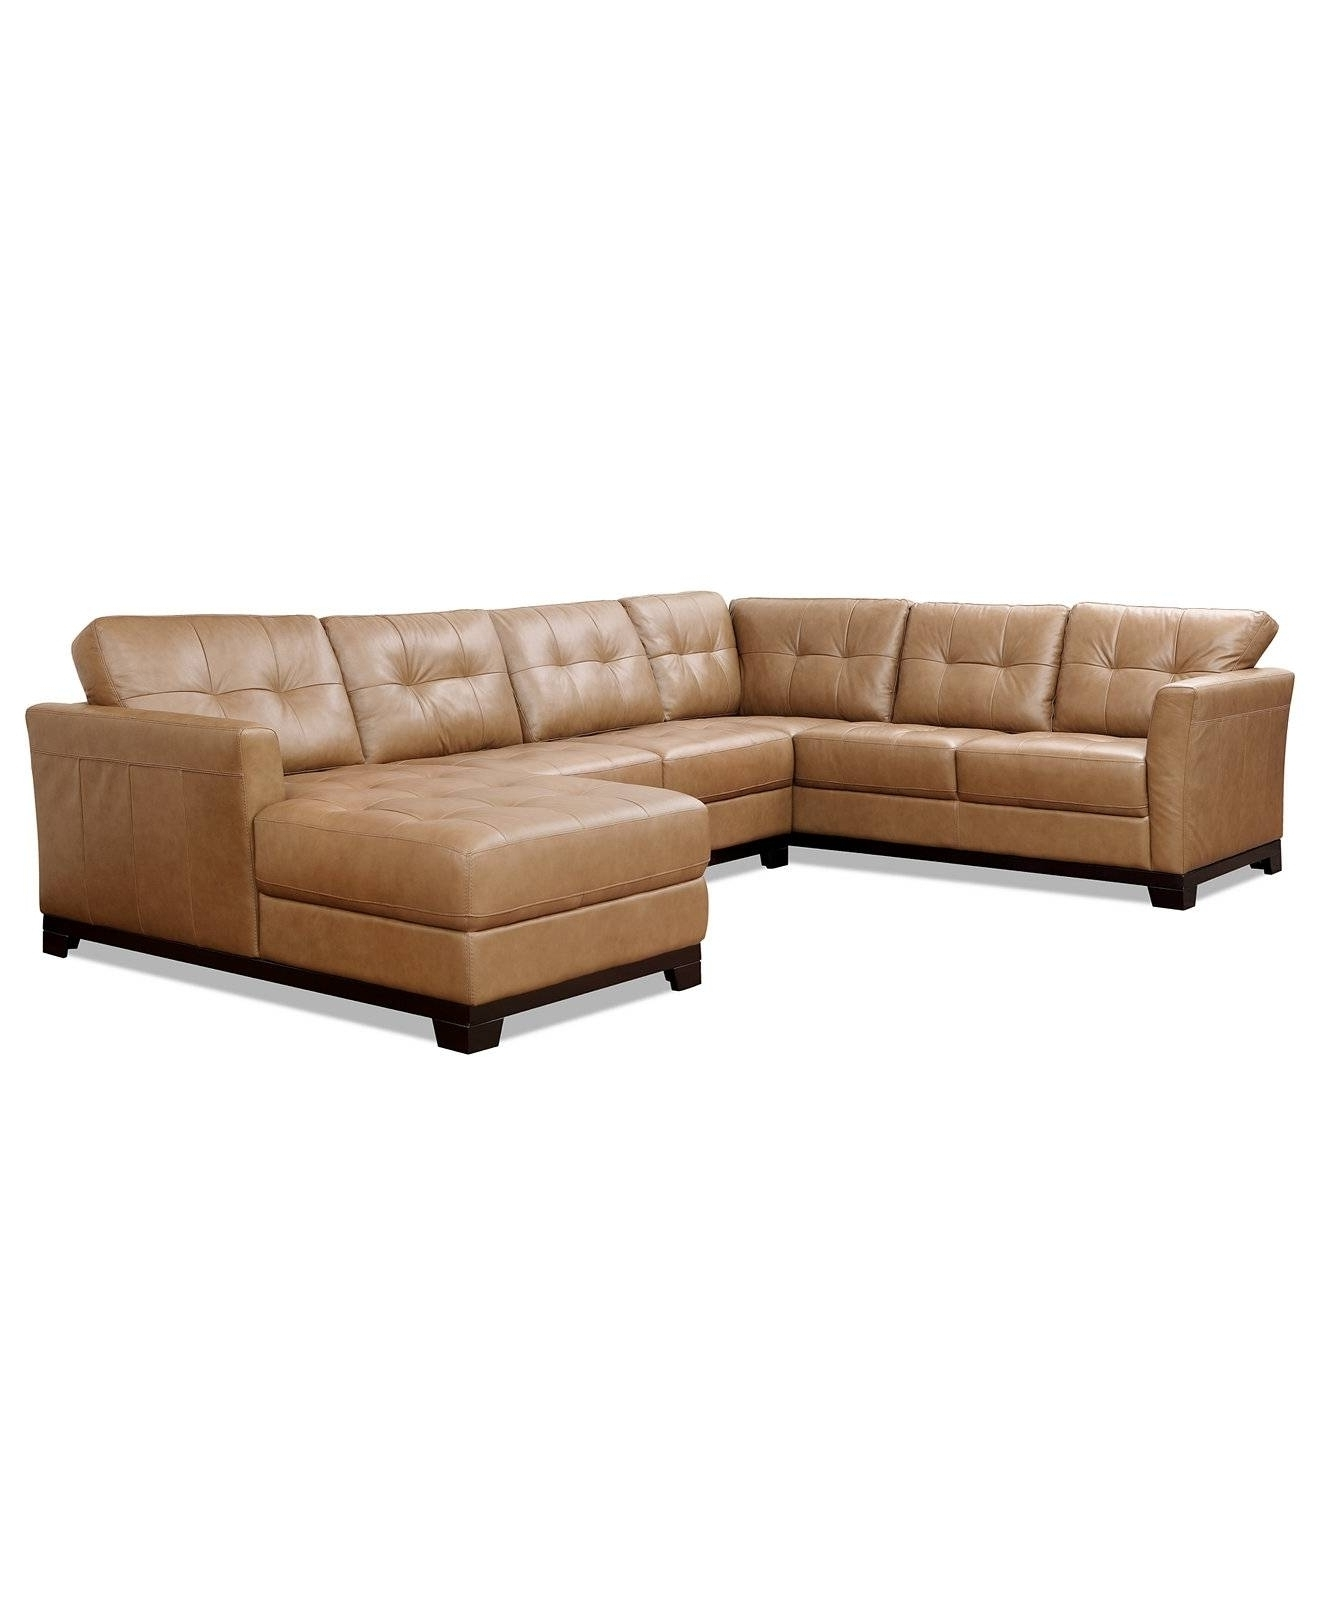 Macys Leather Sofas In 2018 Leather Sectional Sofa Macys • Leather Sofa (View 8 of 15)